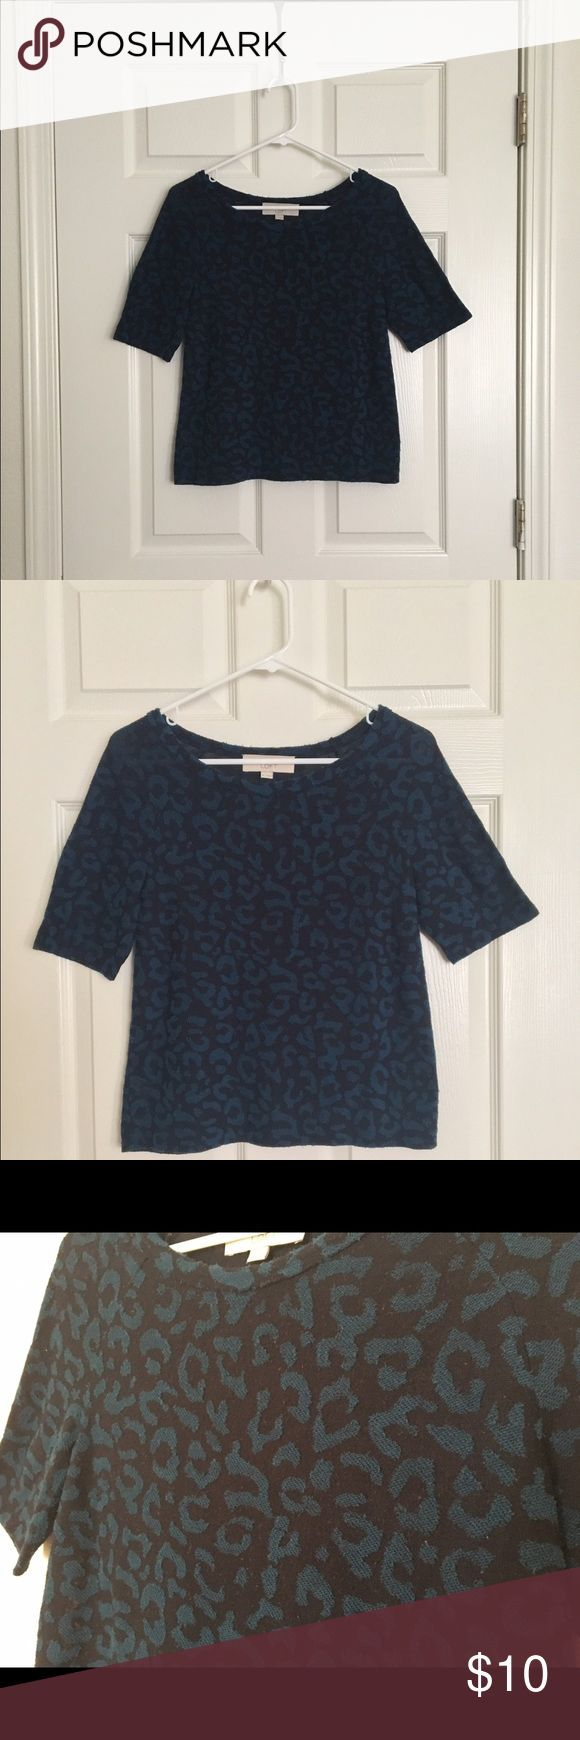 Navy Leopard Print Shirt Ann Taylor LOFT/ Size XS/ Navy blue with light blue leopard print/ In fair condition with some pilling/ Has been washed/ Let me know if you have questions! LOFT Tops Tees - Short Sleeve